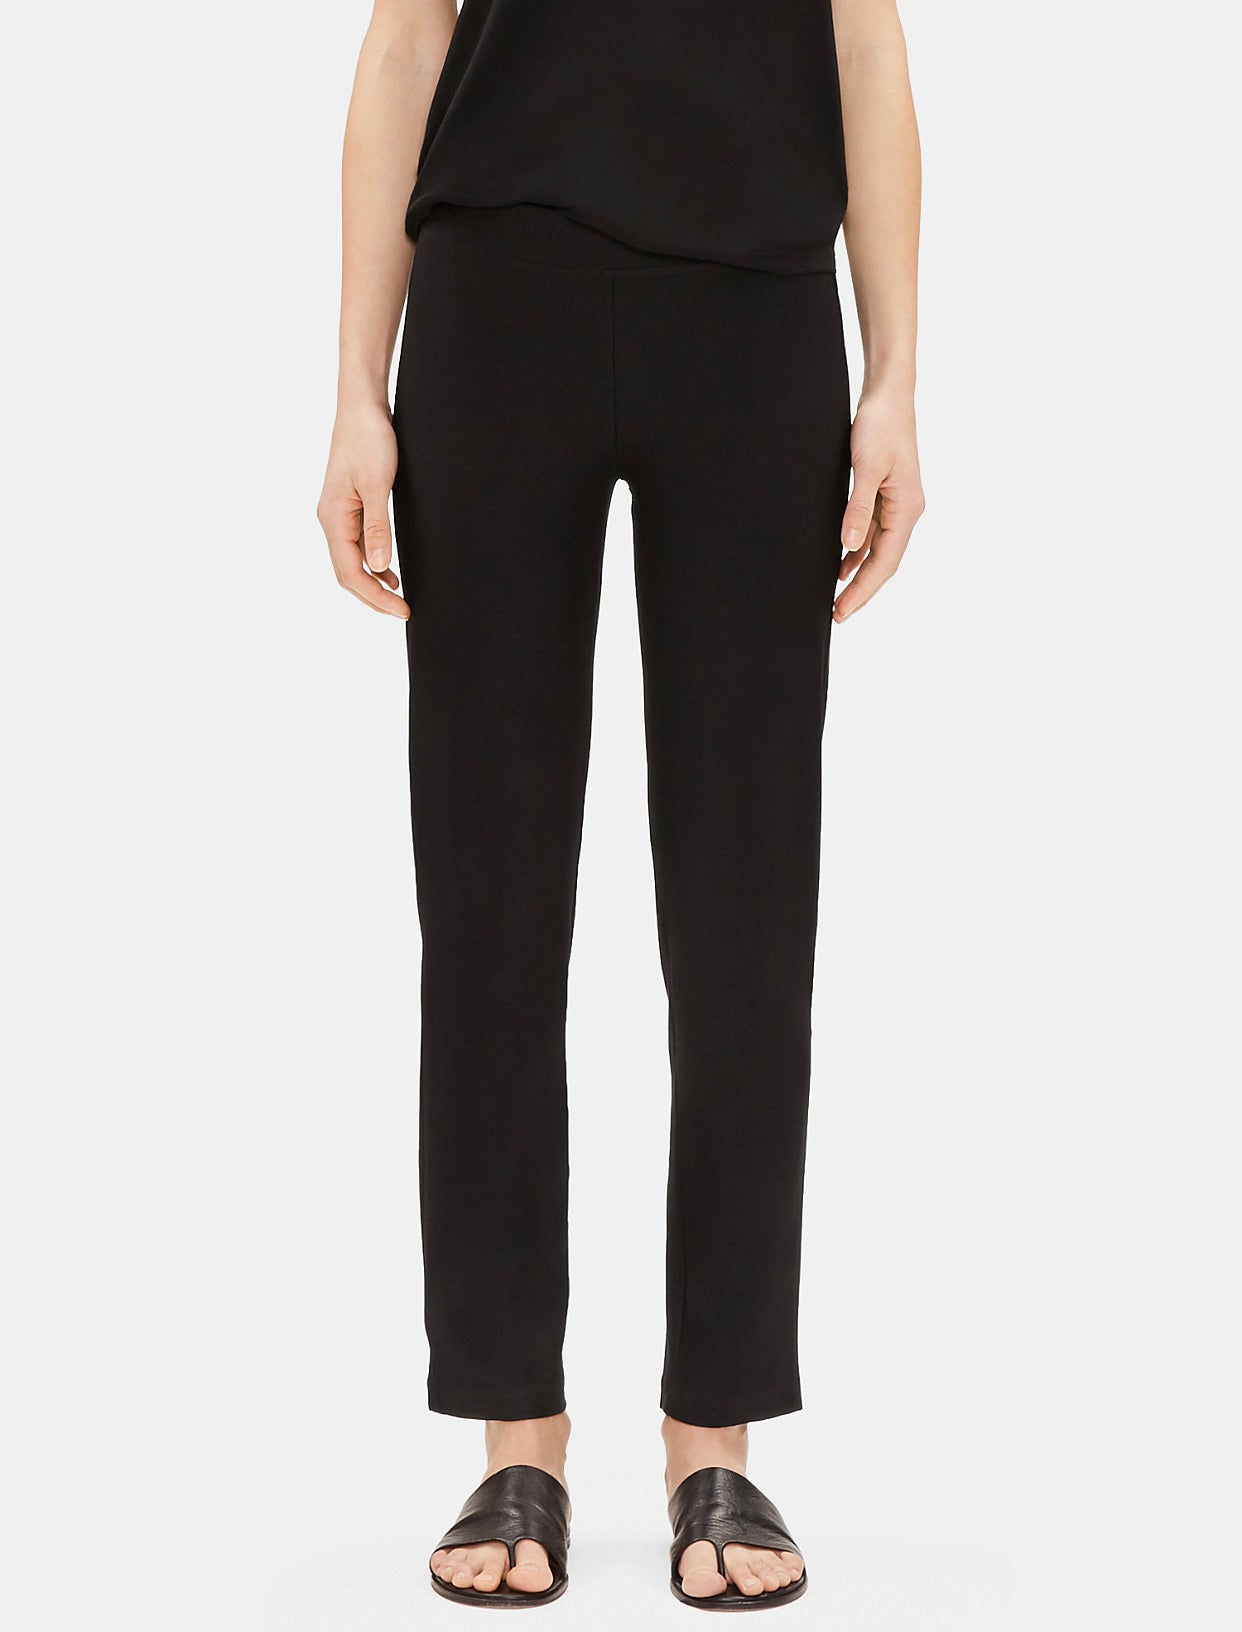 System washable stretch crepe ankle pant